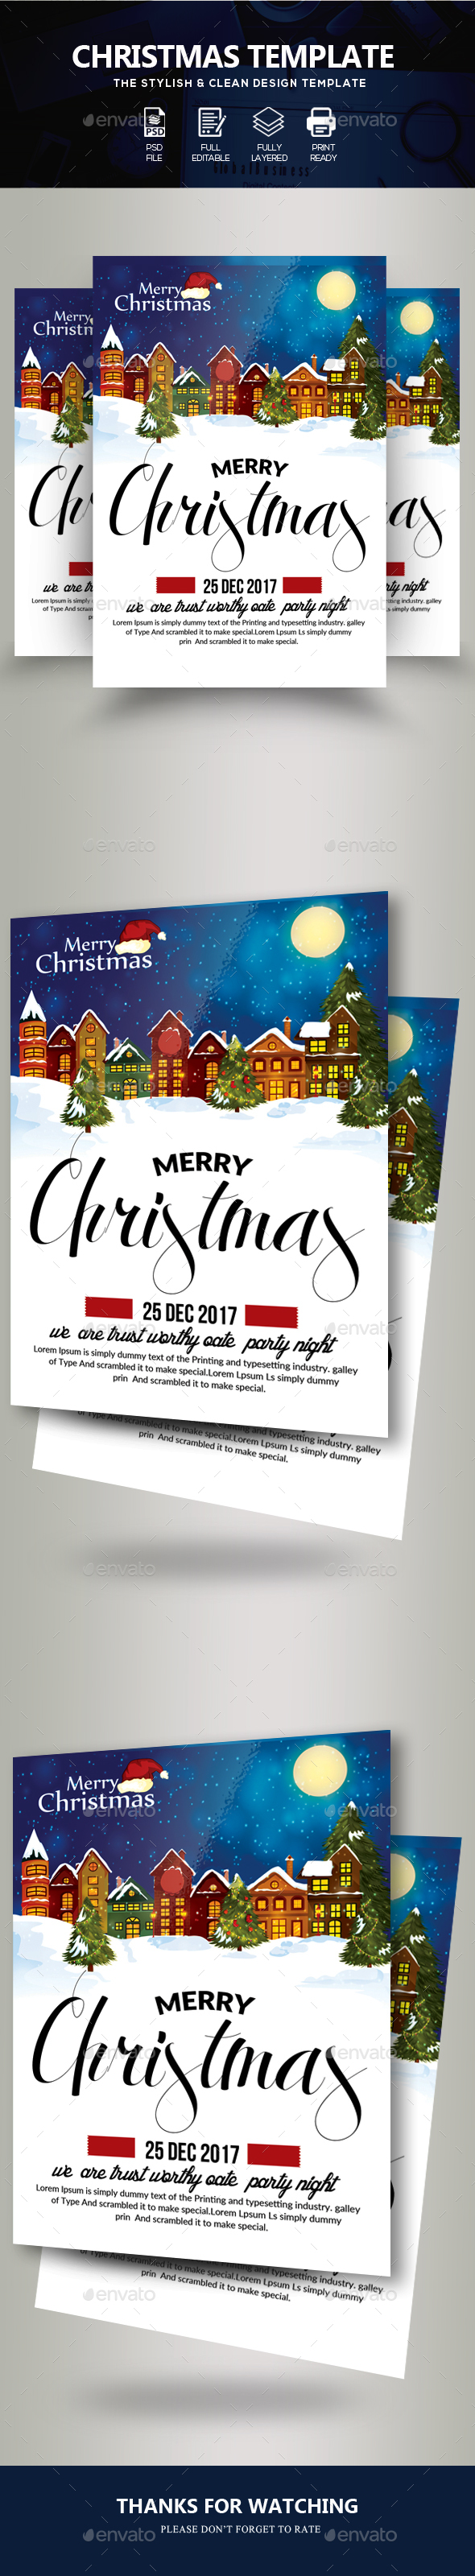 Marry Charistmas Flyer Template - Events Flyers